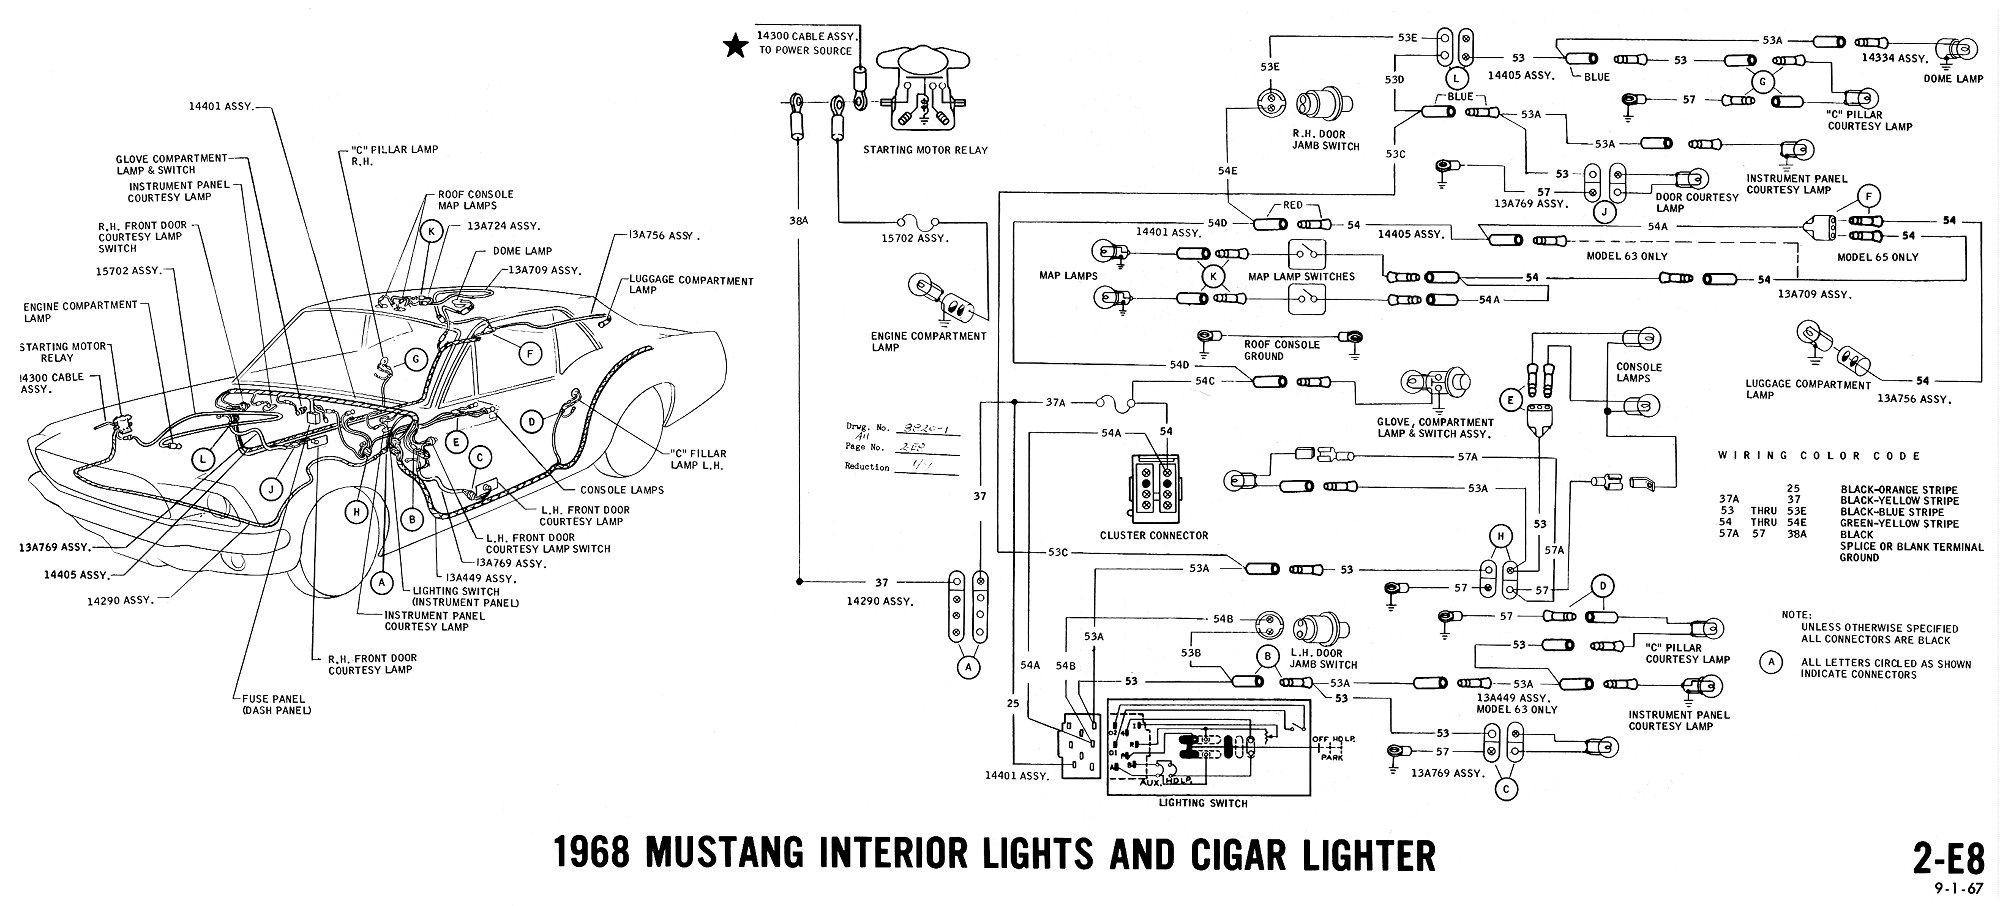 E8 1968 mustang wiring diagrams evolving software 1967 Mustang Wiring Schematic at alyssarenee.co